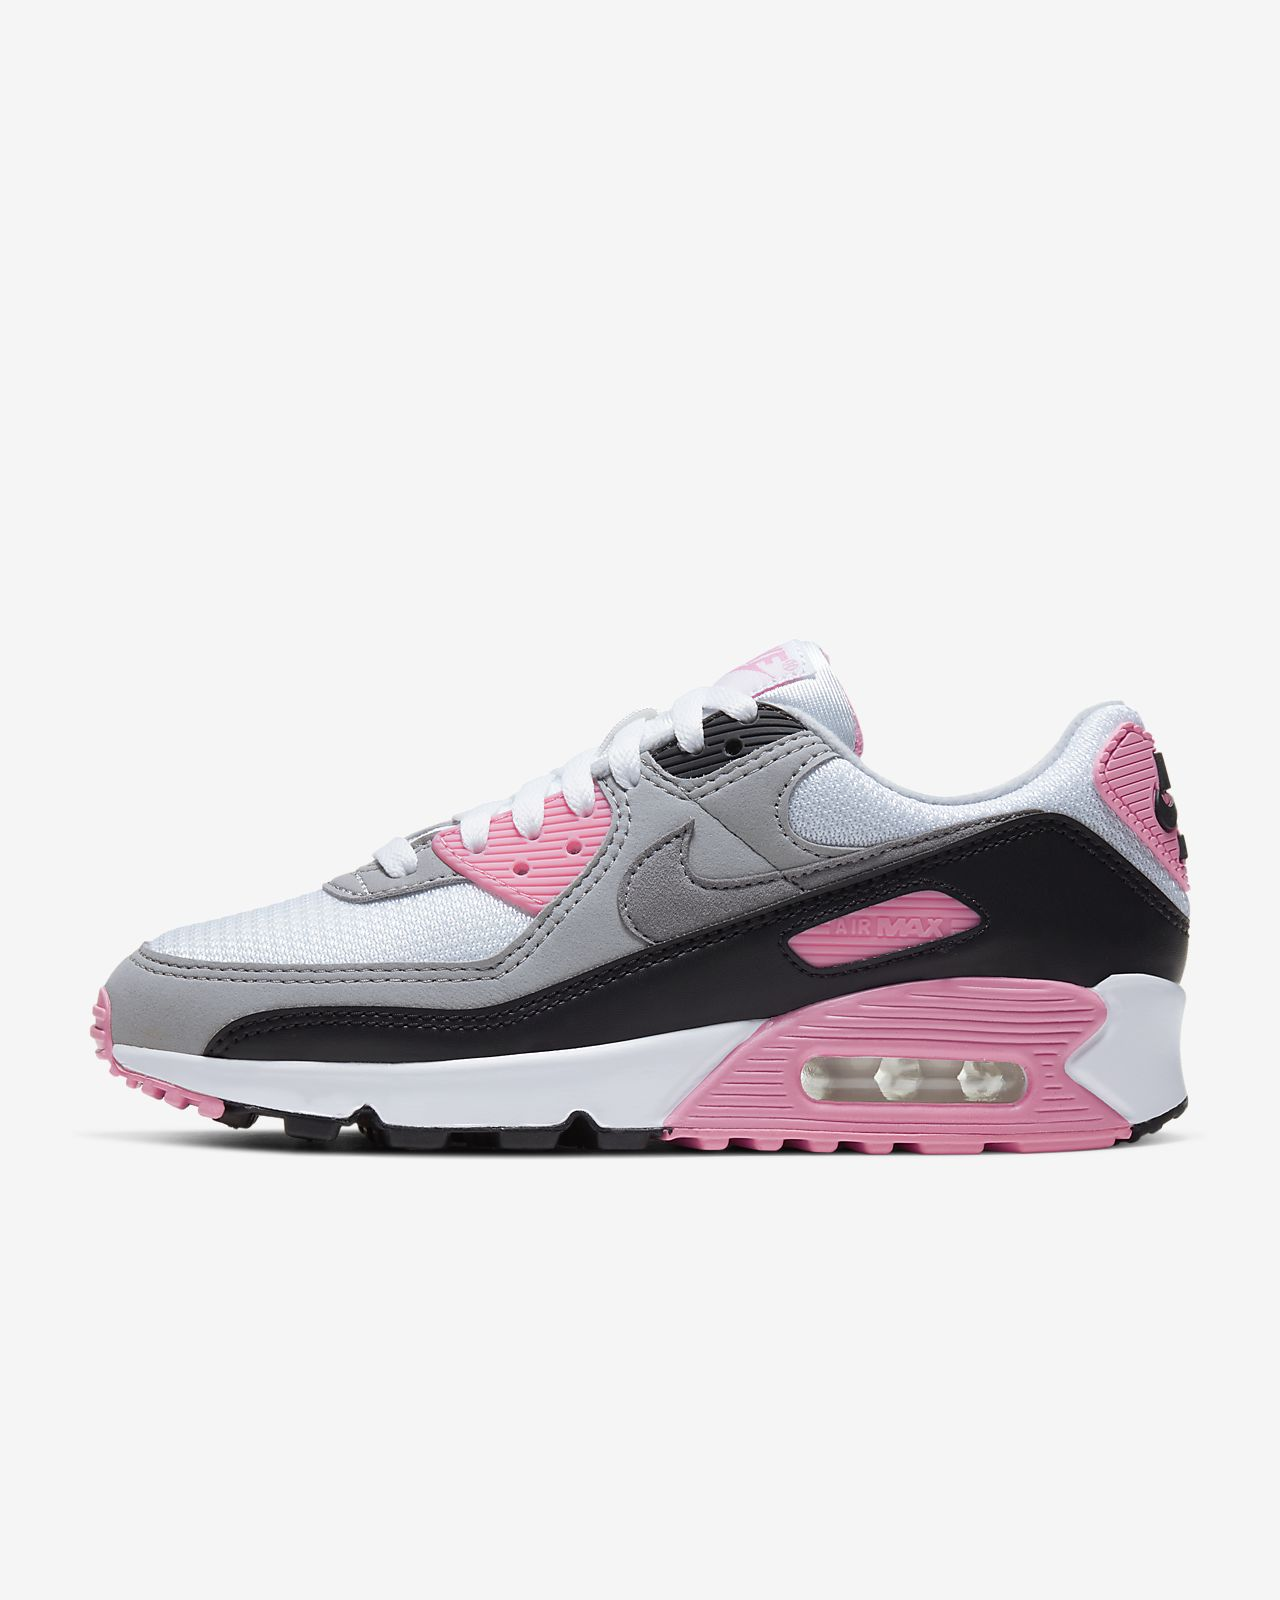 new lower prices hot sale 50% off Chaussure Nike Air Femme Max pour 90 P0yvmnN8Ow